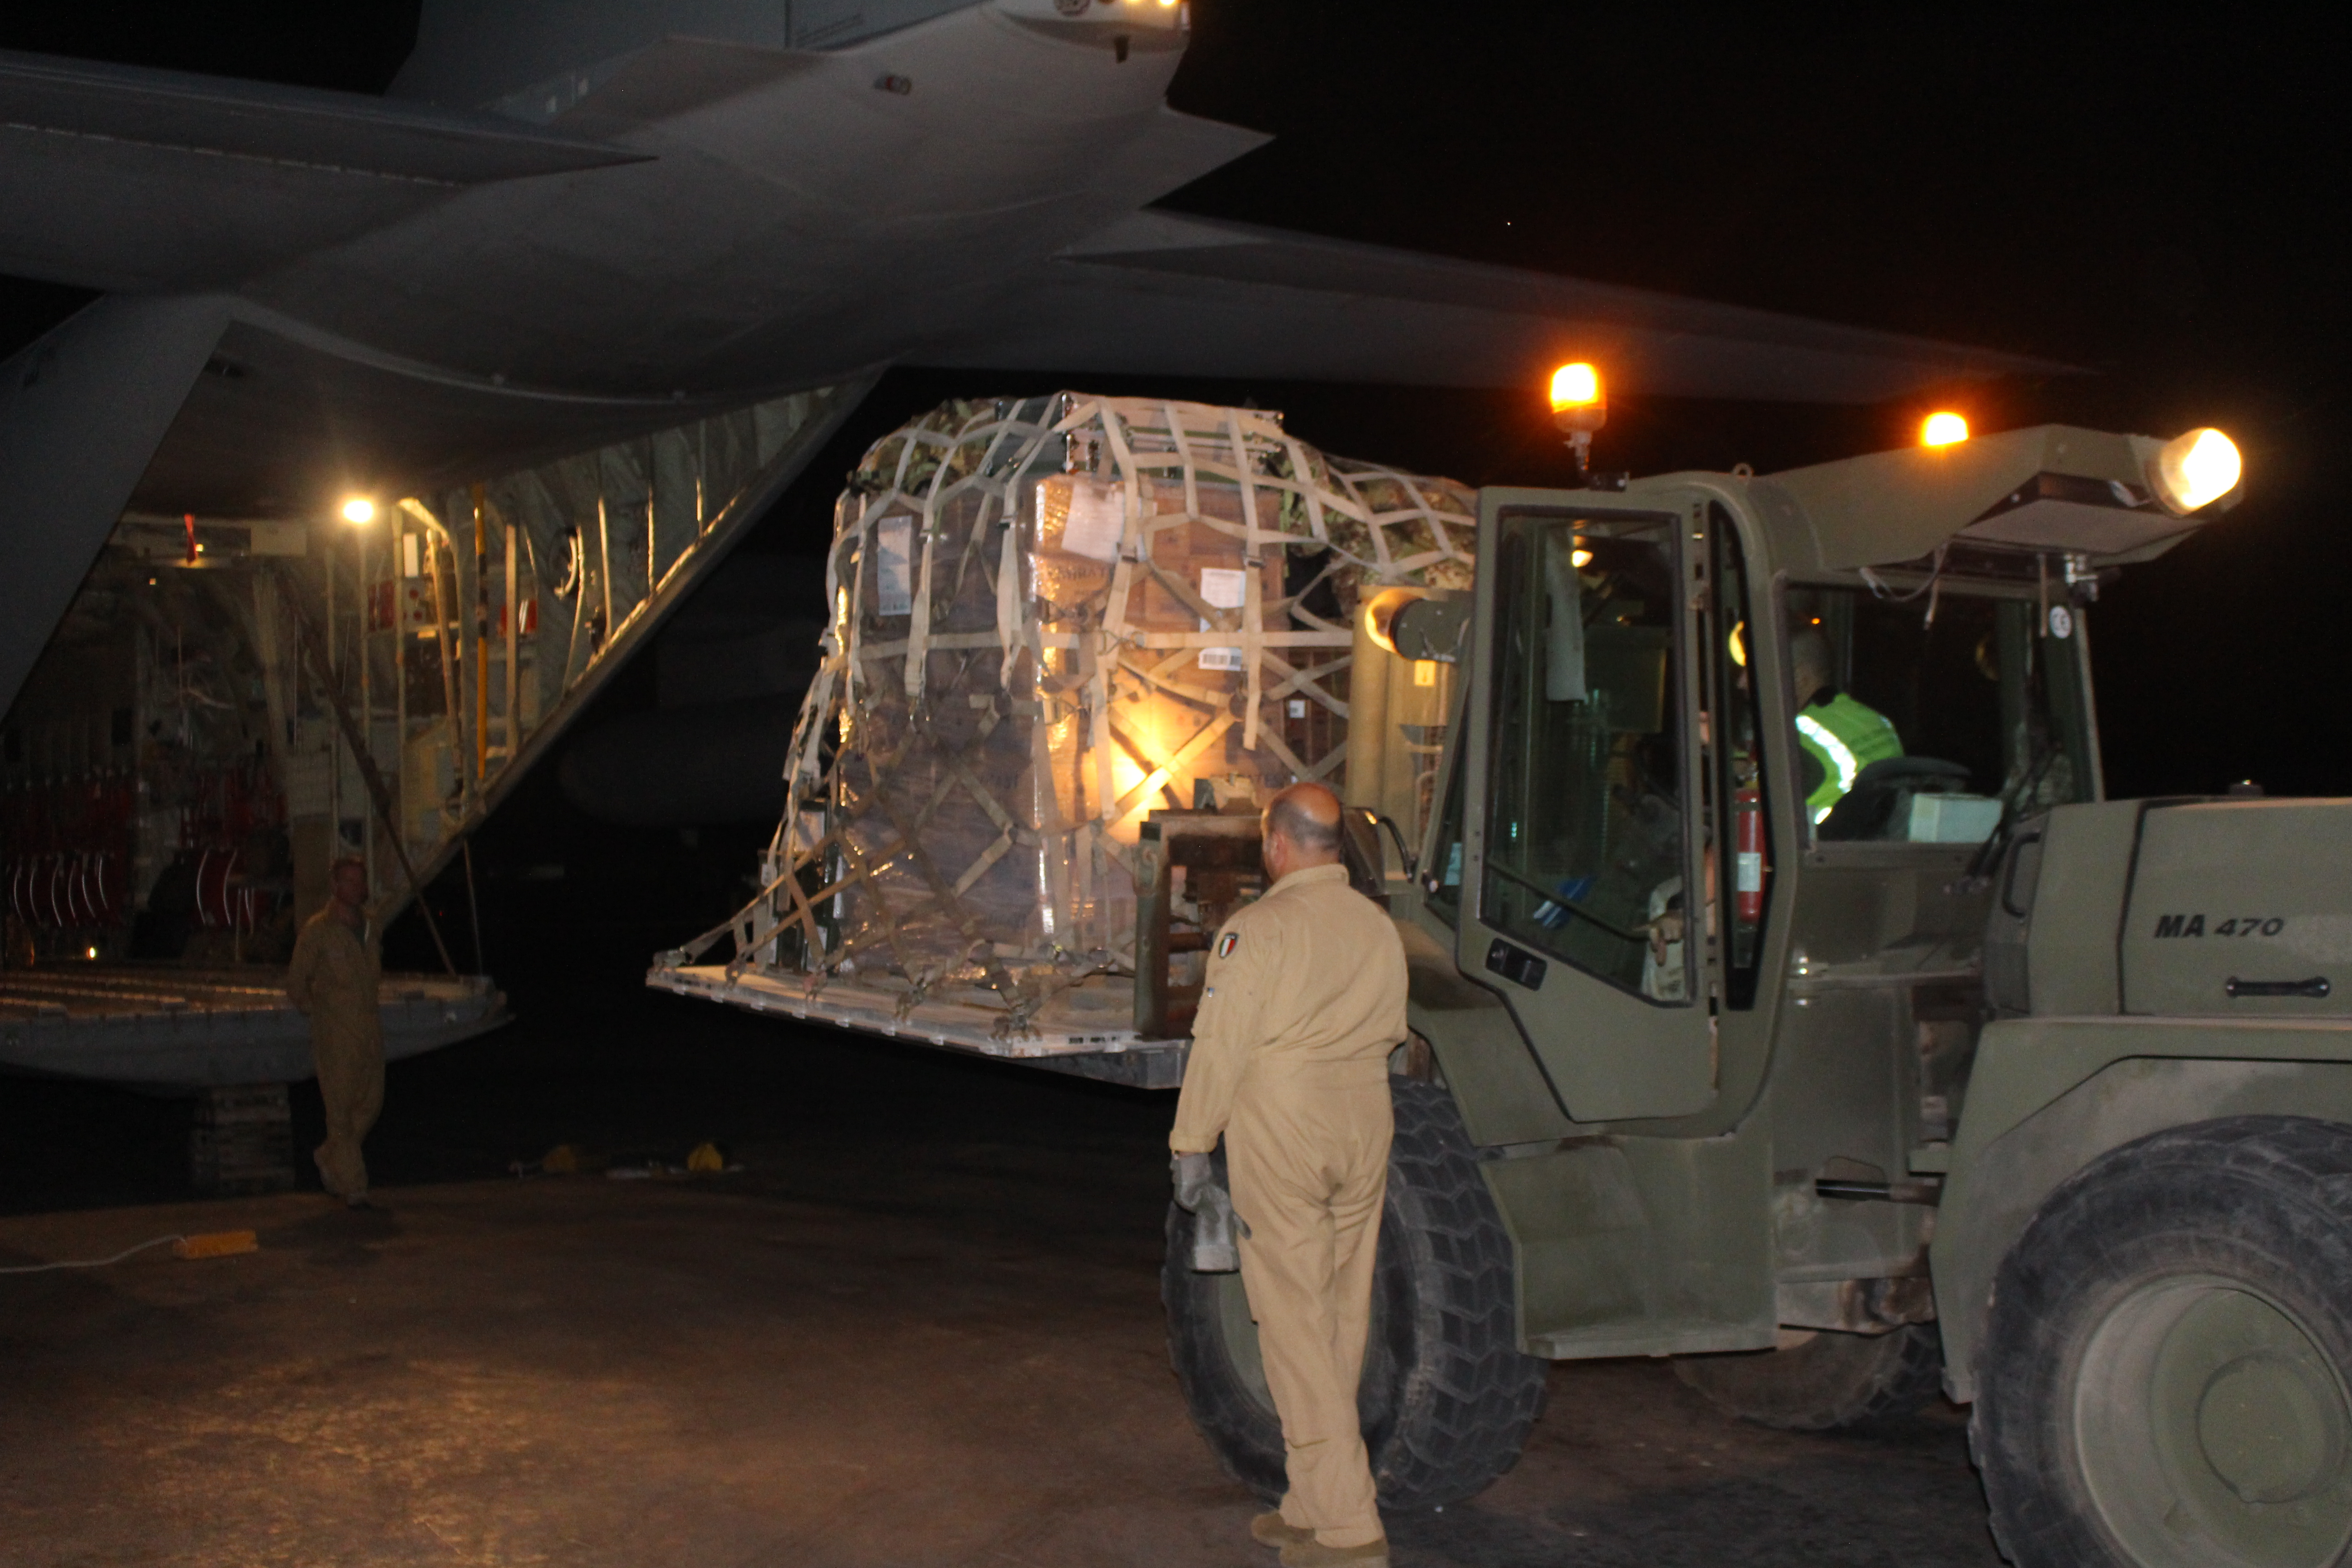 Members of the Italian Army load cargo for an Air Transportation and Refueling Exchange of Service (ATARES) proof-of-concept mission out of Djibouti, Africa, June 6, 2017. (Photo courtesy of Italian Army member Gennaro de Gennaro)